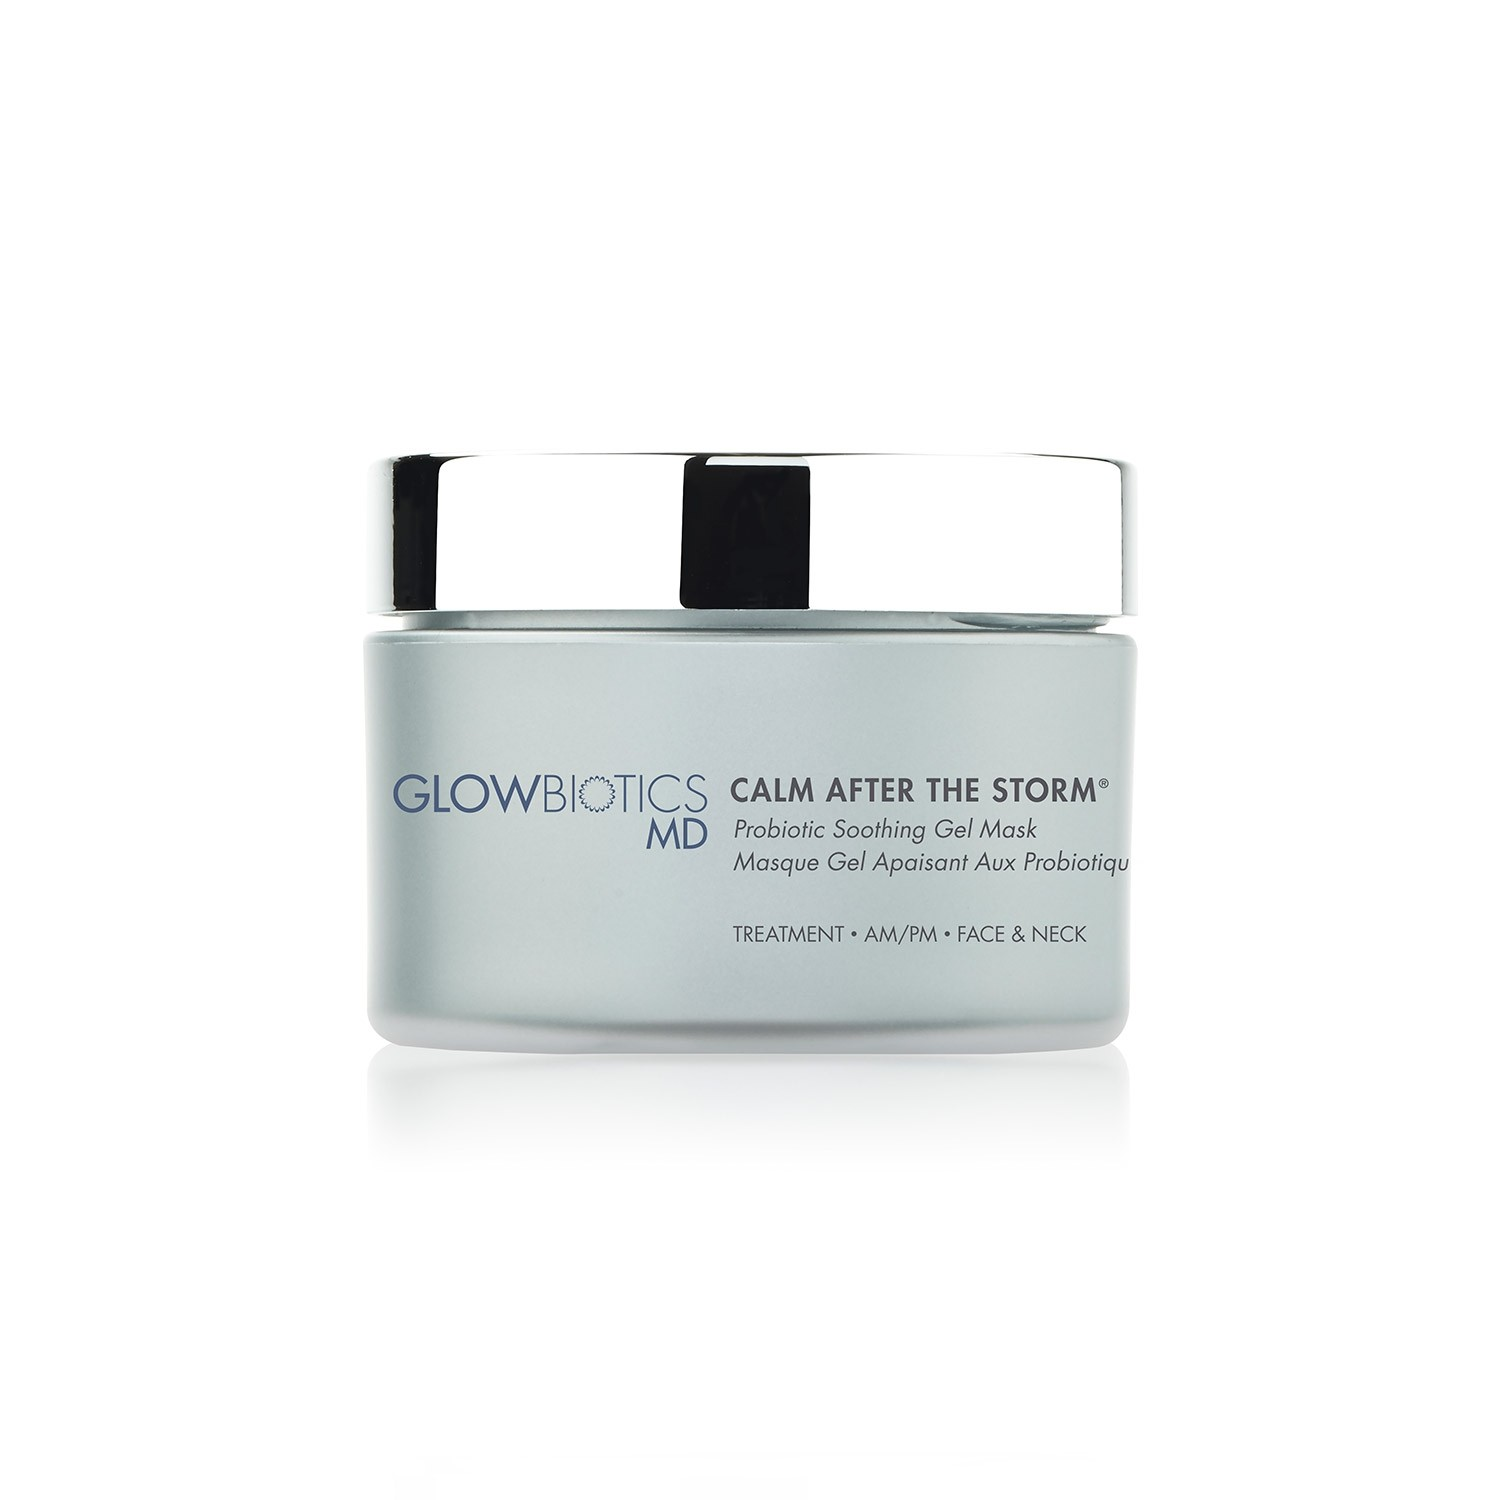 GLOWBIOTICS MD CALM AFTER THE STORM Probiotic Soothing Gel Mask (1.8 fl oz / 53 ml)